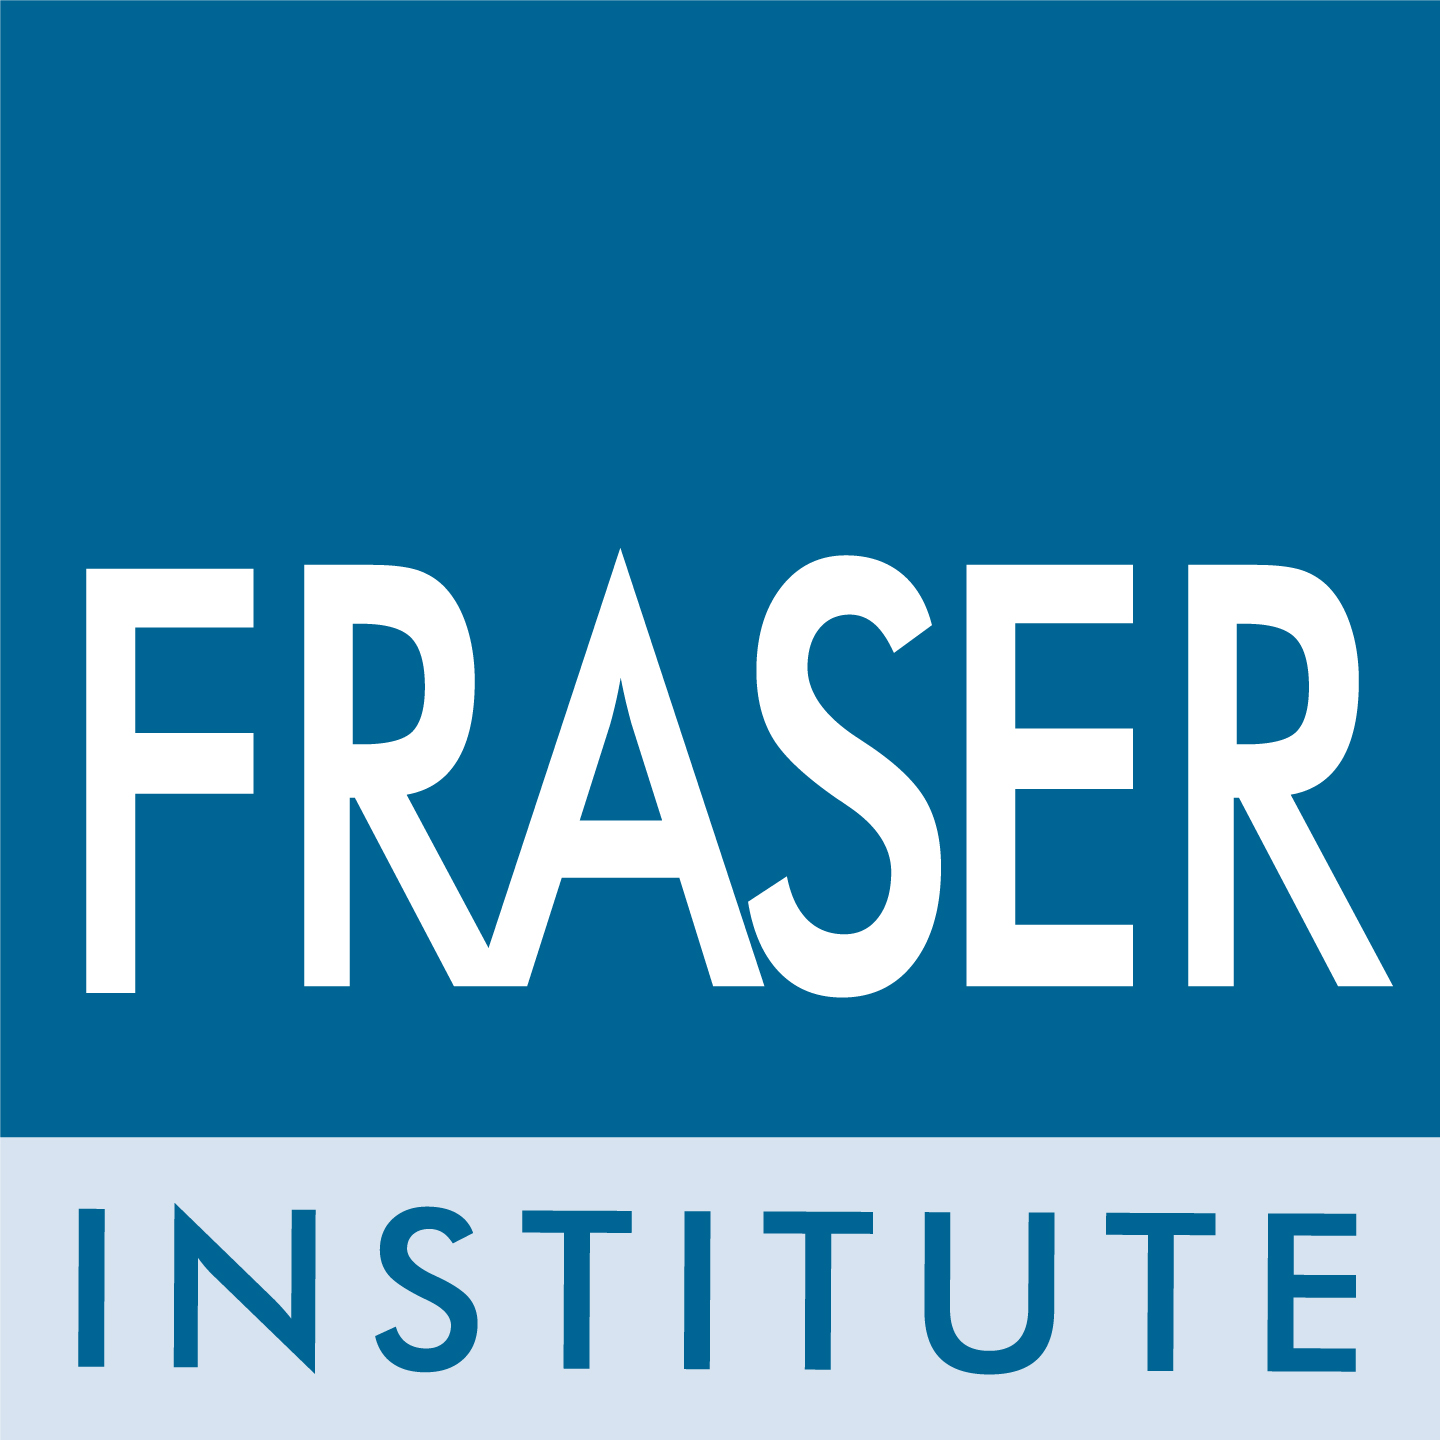 Fraser Institute News Release: Texas more than twice as attractive for oil and gas investment than Alberta